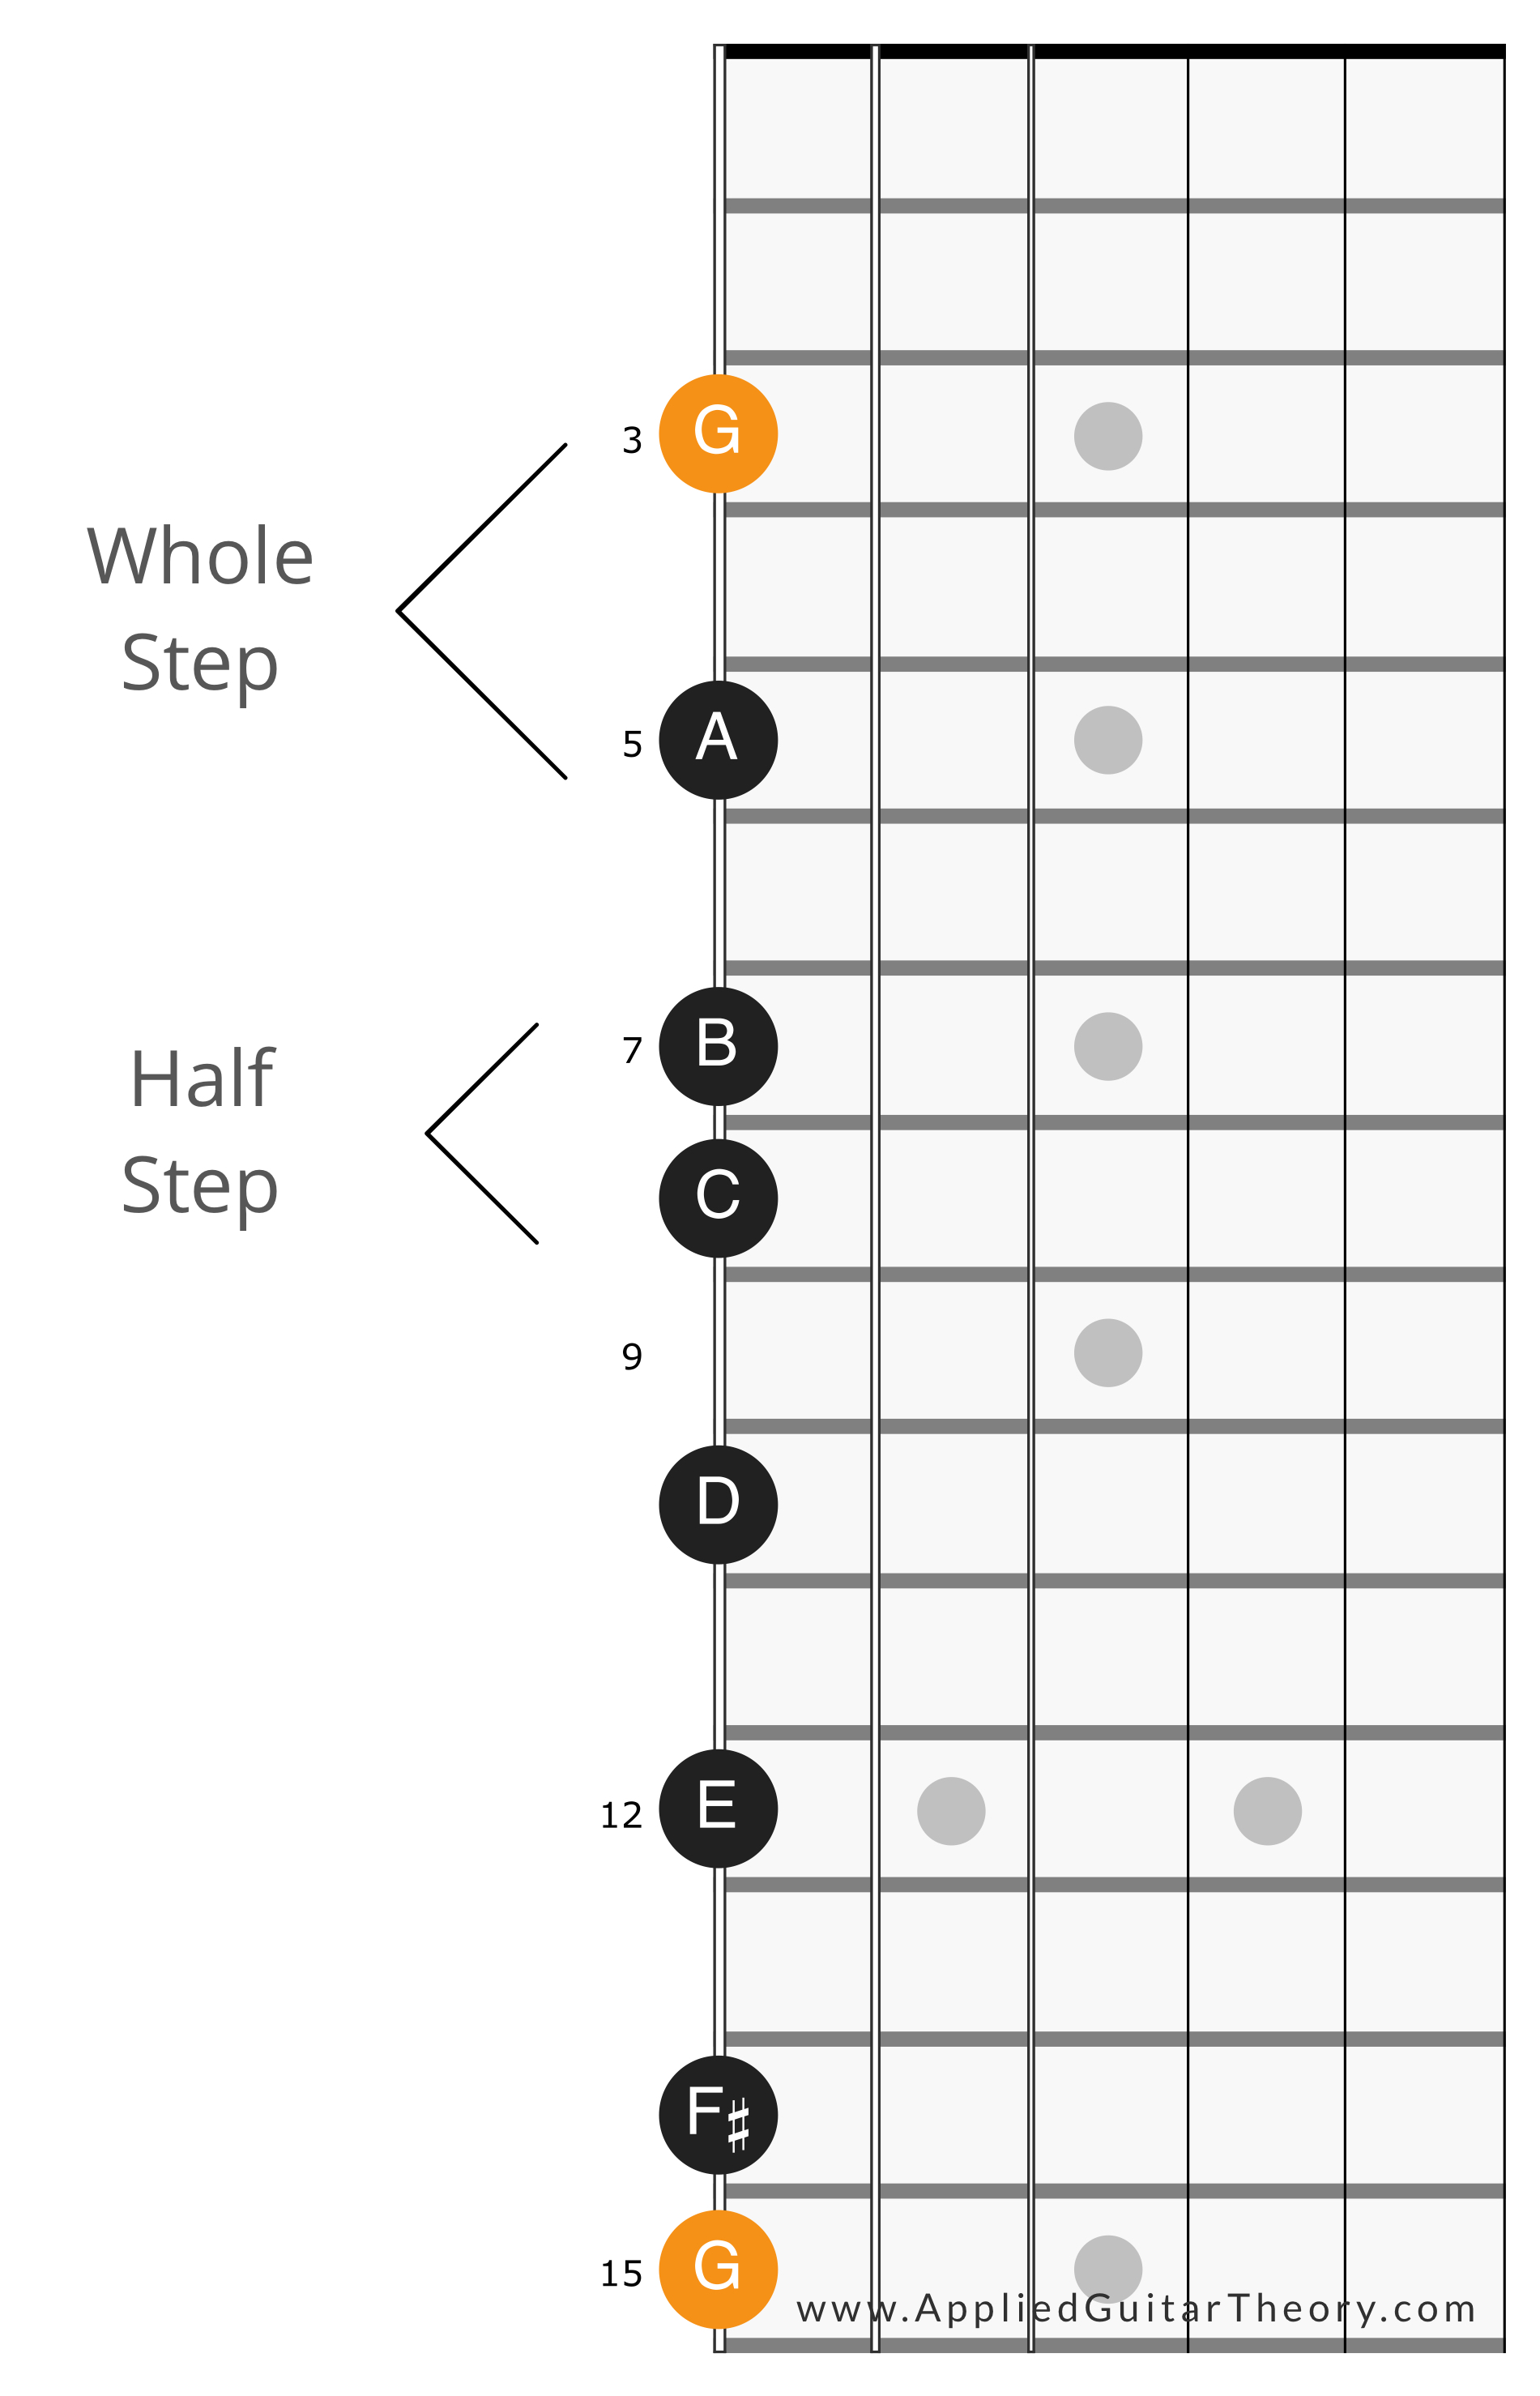 G Major Scale Single String